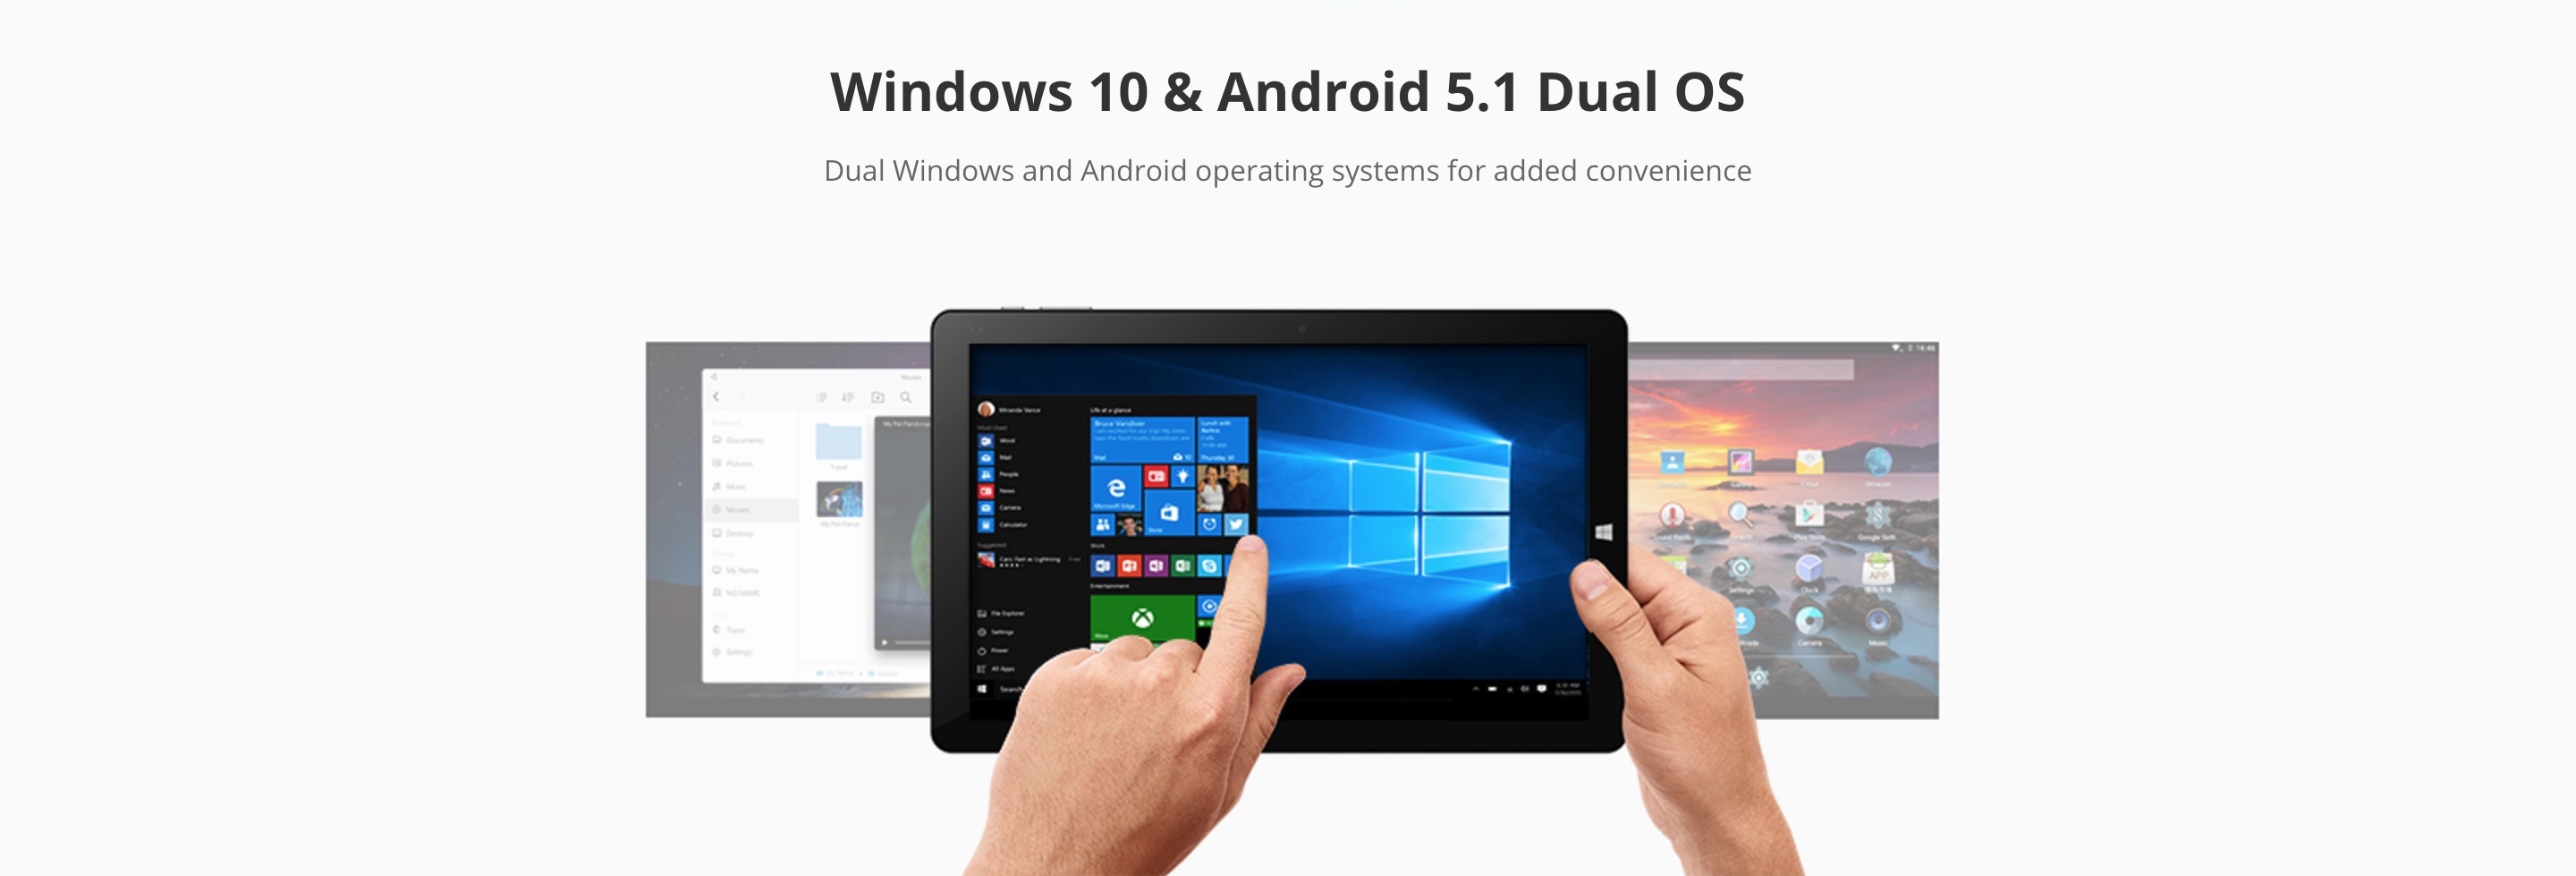 CHUWI Hi10 Plus Windows 10 + Remix OS (Android5.1) タブレットコンピューター